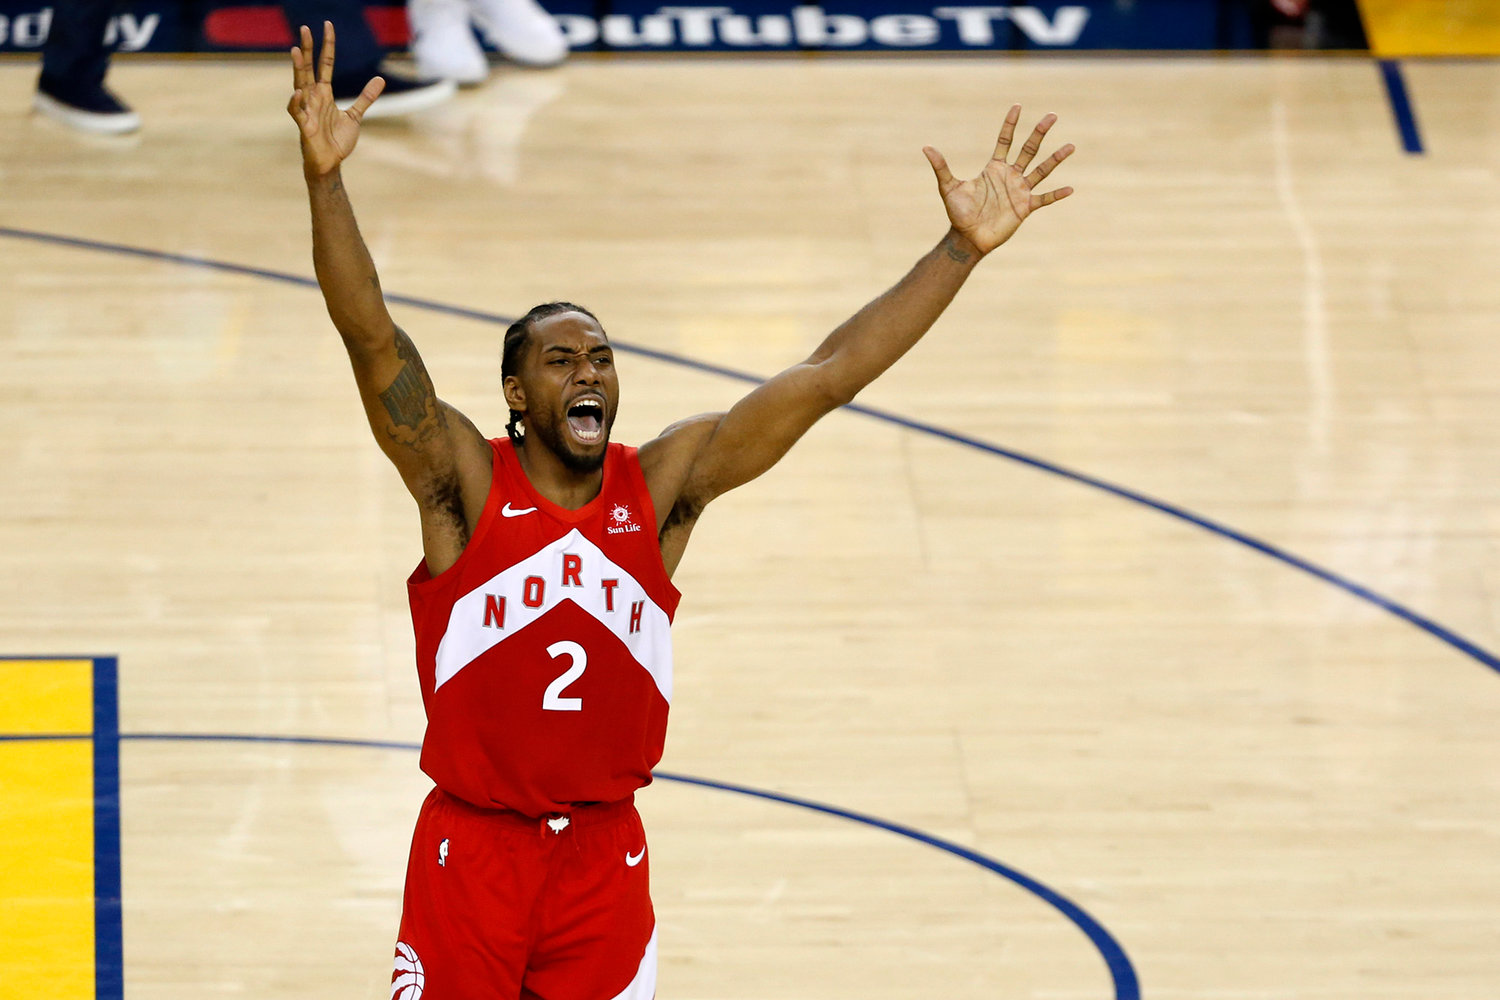 Kawhi Leonard of the Toronto Raptors celebrates his team's 114-110 win against the Golden State Warriors in Game 6 to capture the NBA championship at ORACLE Arena in Oakland, Calif., on Thursday, June 13, 2019. ()